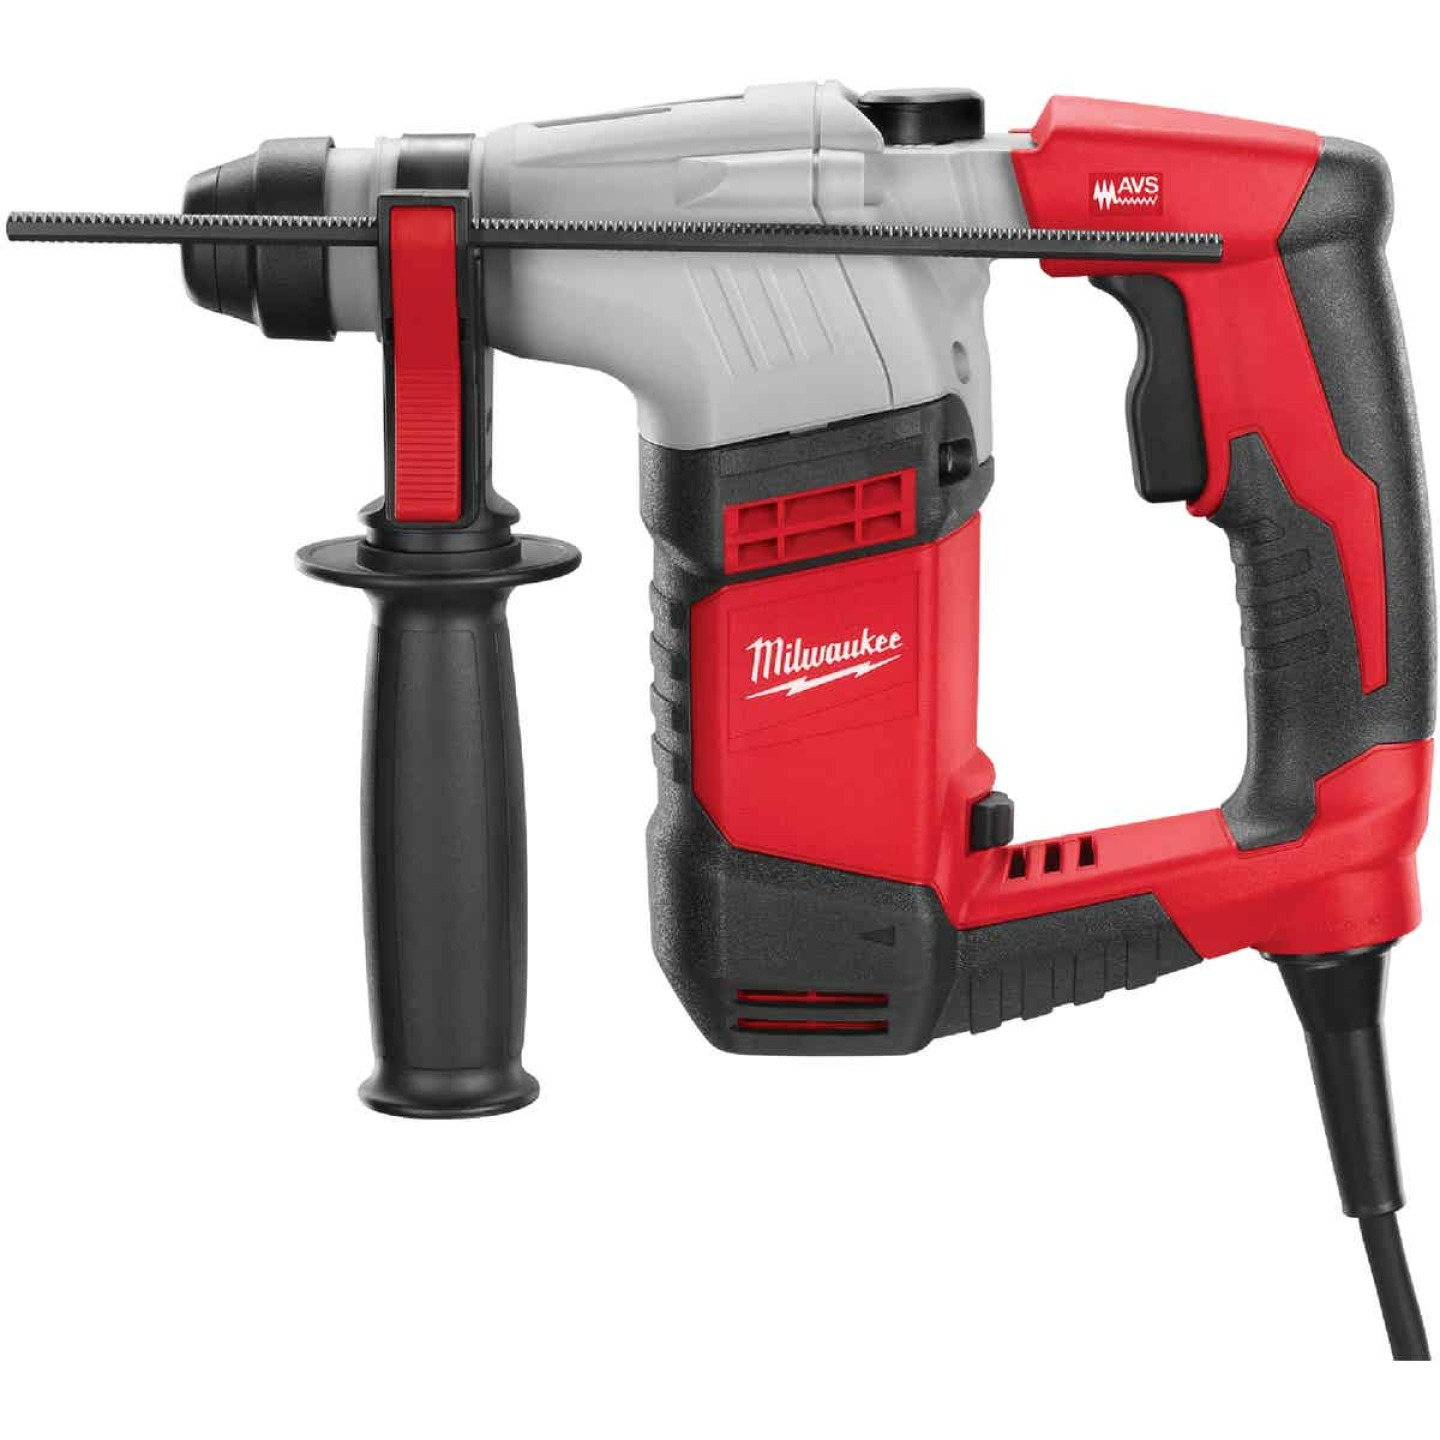 Milwaukee 5/8 In. SDS-Plus Keyless 5.5-Amp Electric Rotary Hammer Drill Image 1